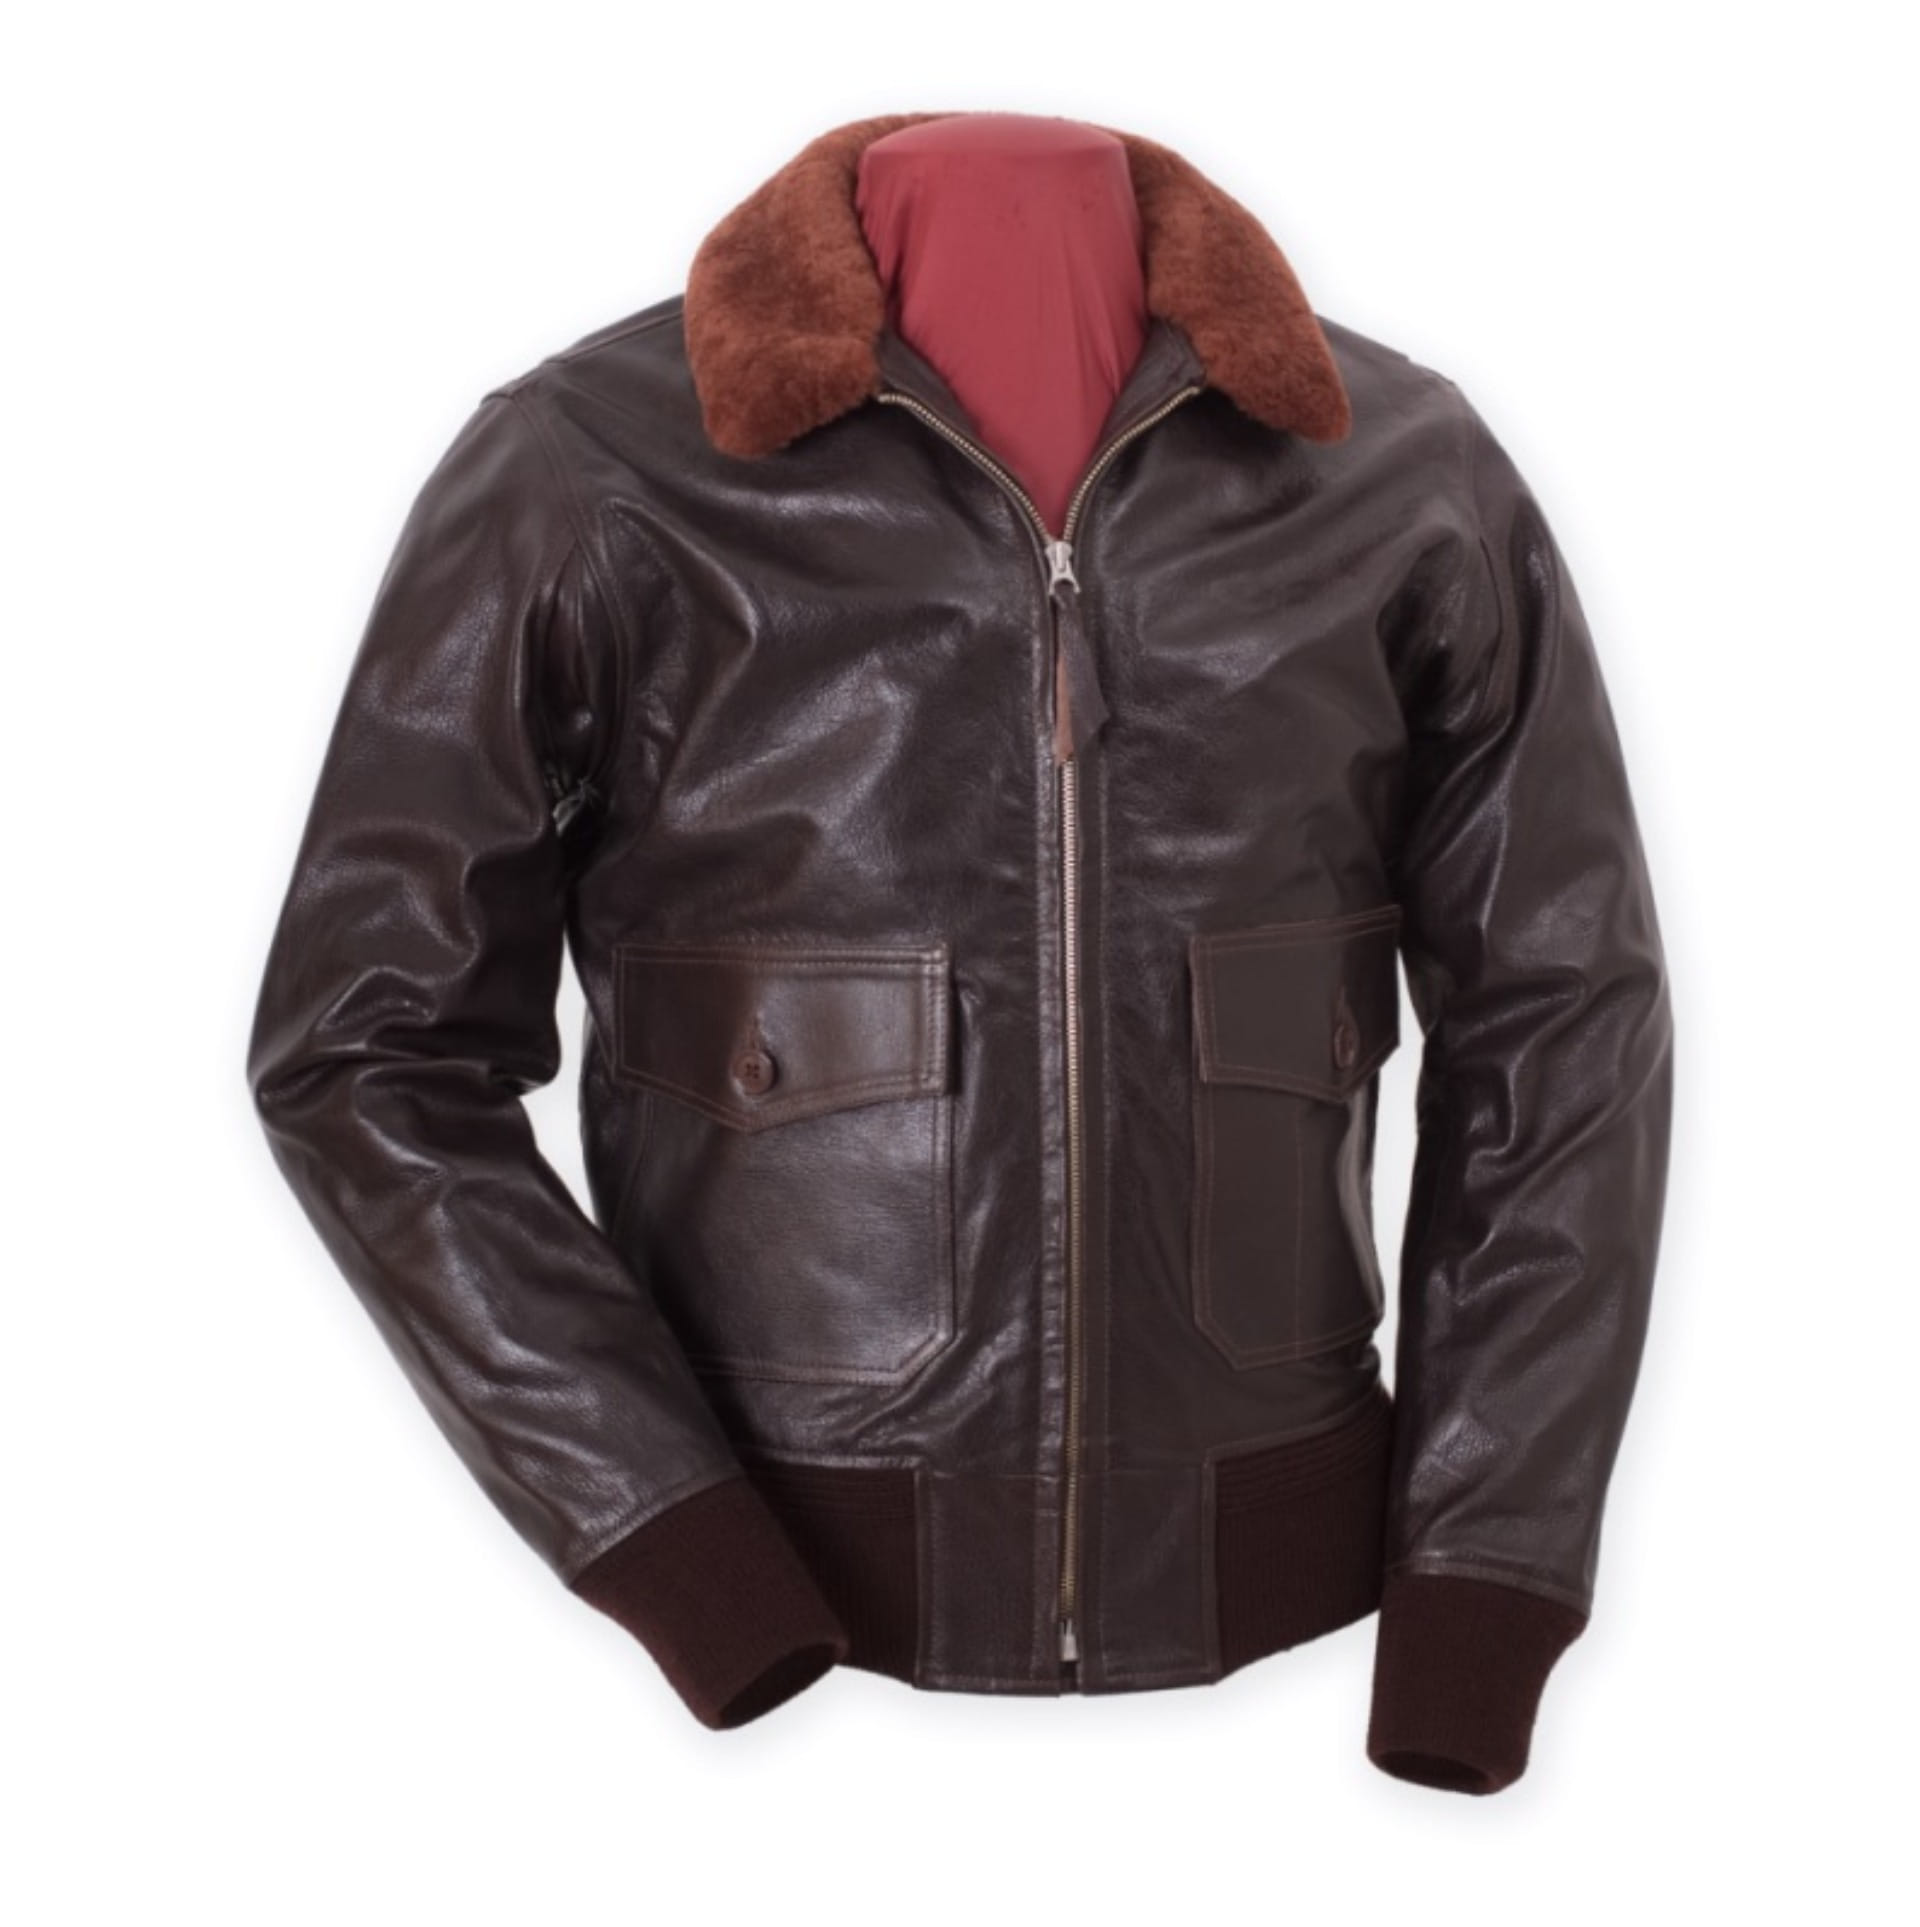 JACKET FLYING G-1 (Dark Brown)